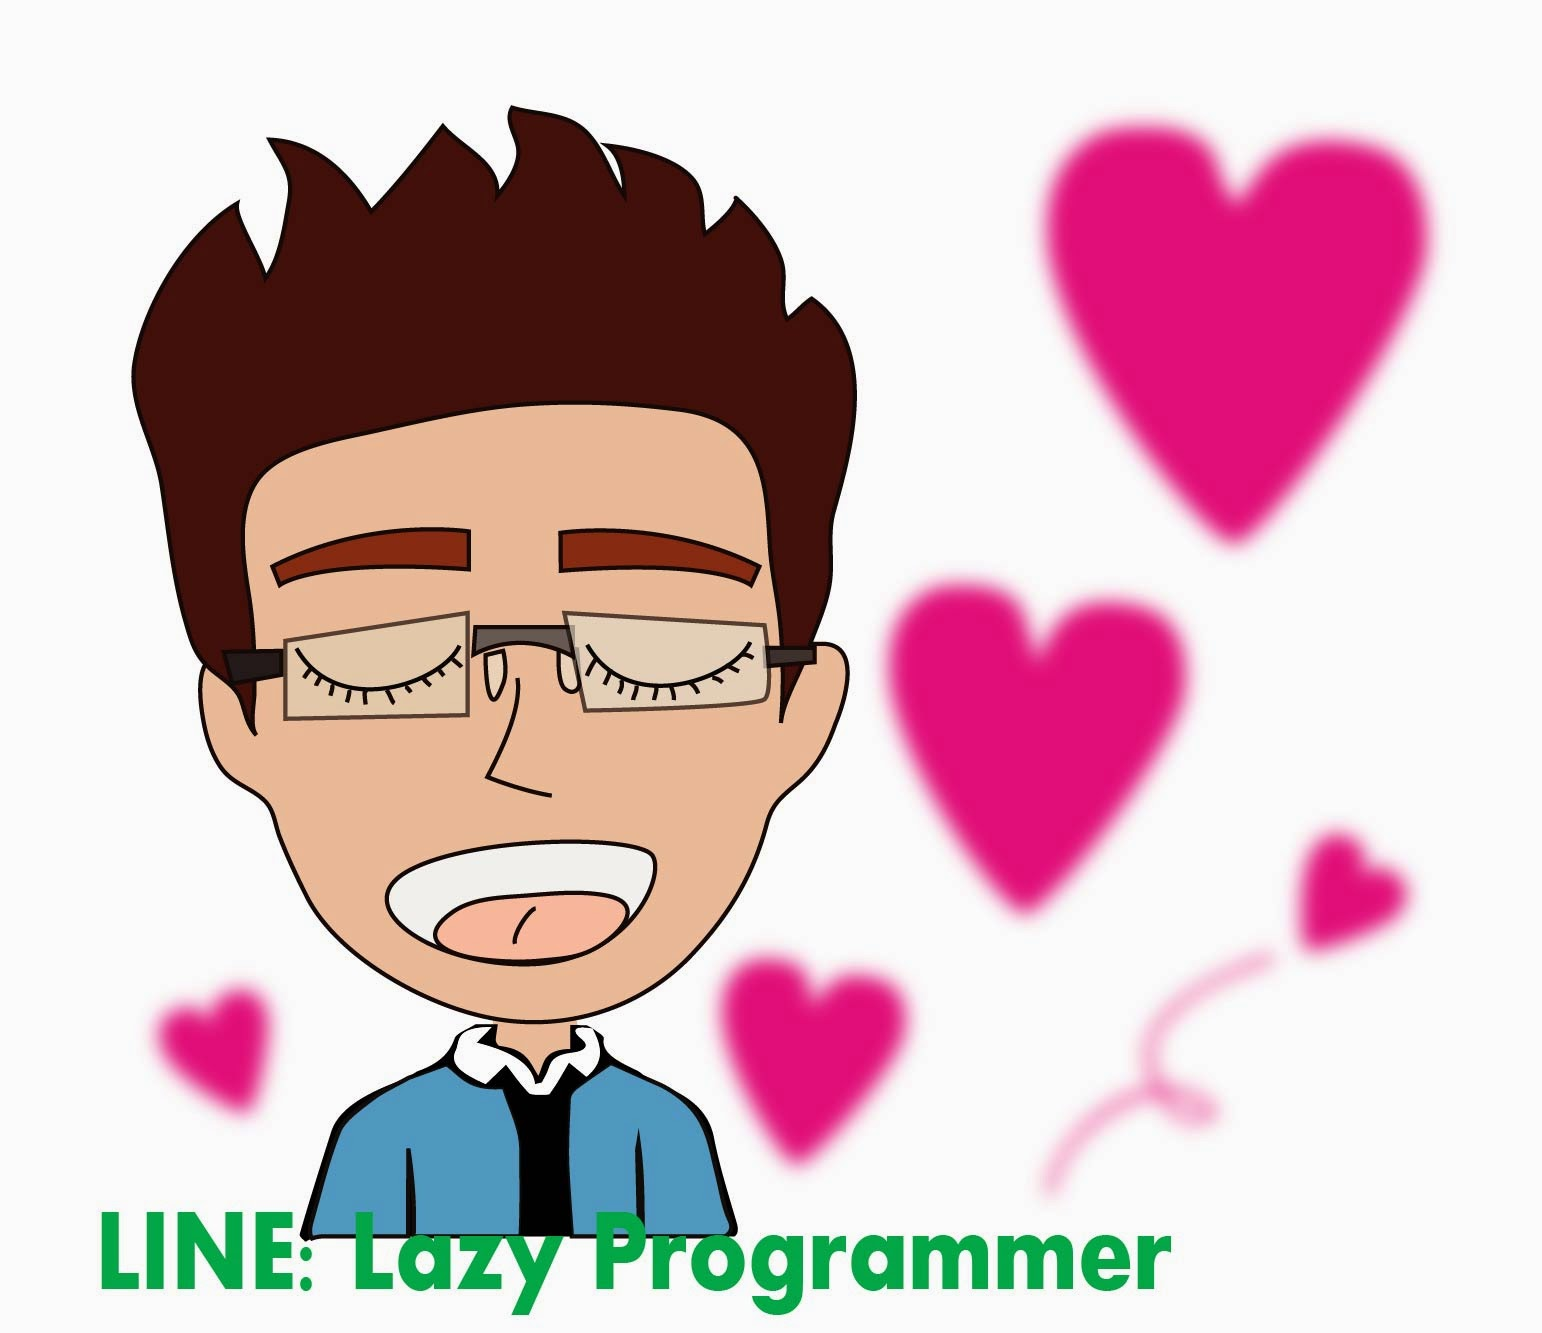 Get Line Sticker Lazy Programmer